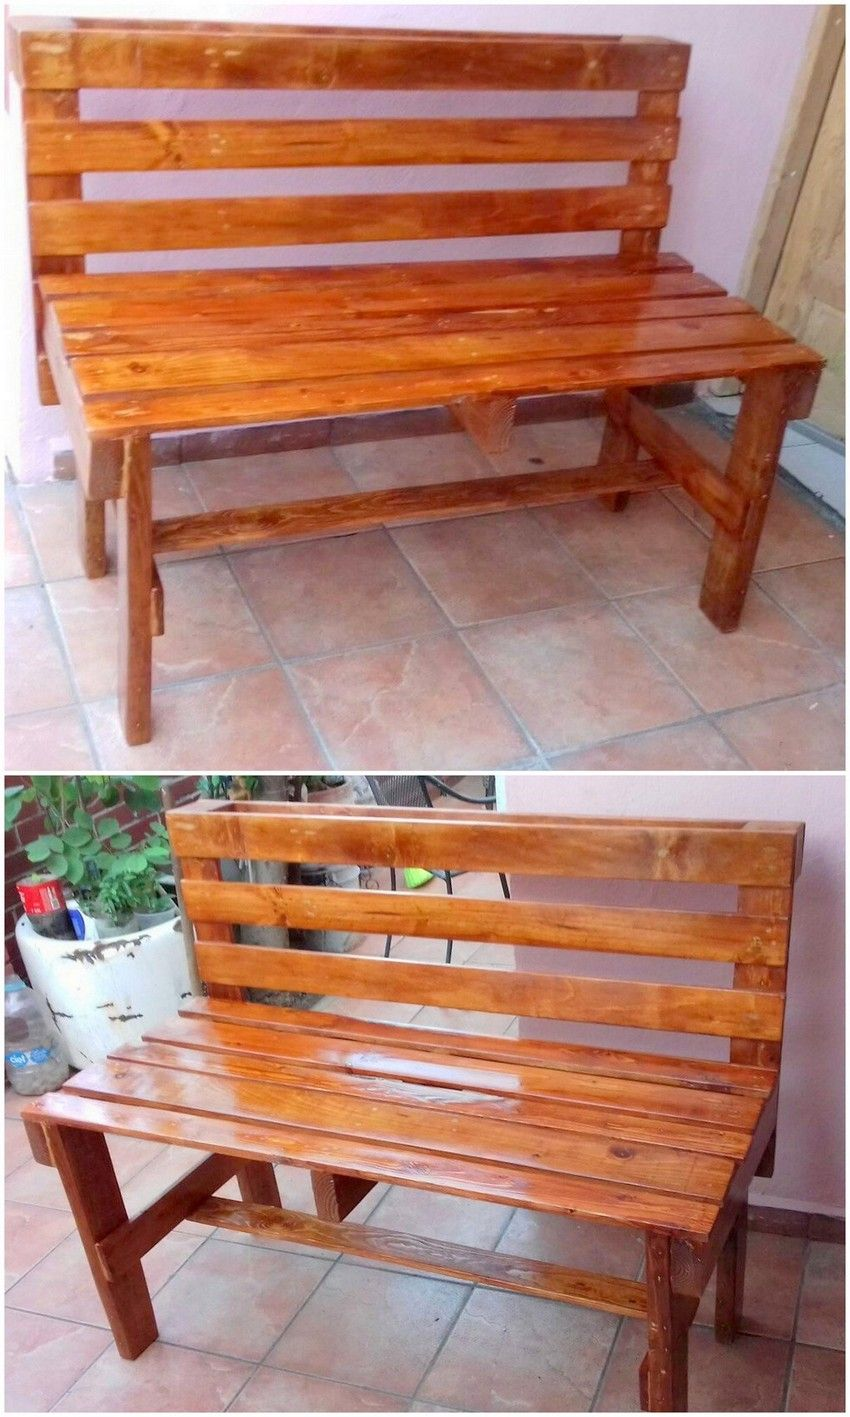 Low Cost DIY Wooden Pallets Projects | Wooden pallet ...